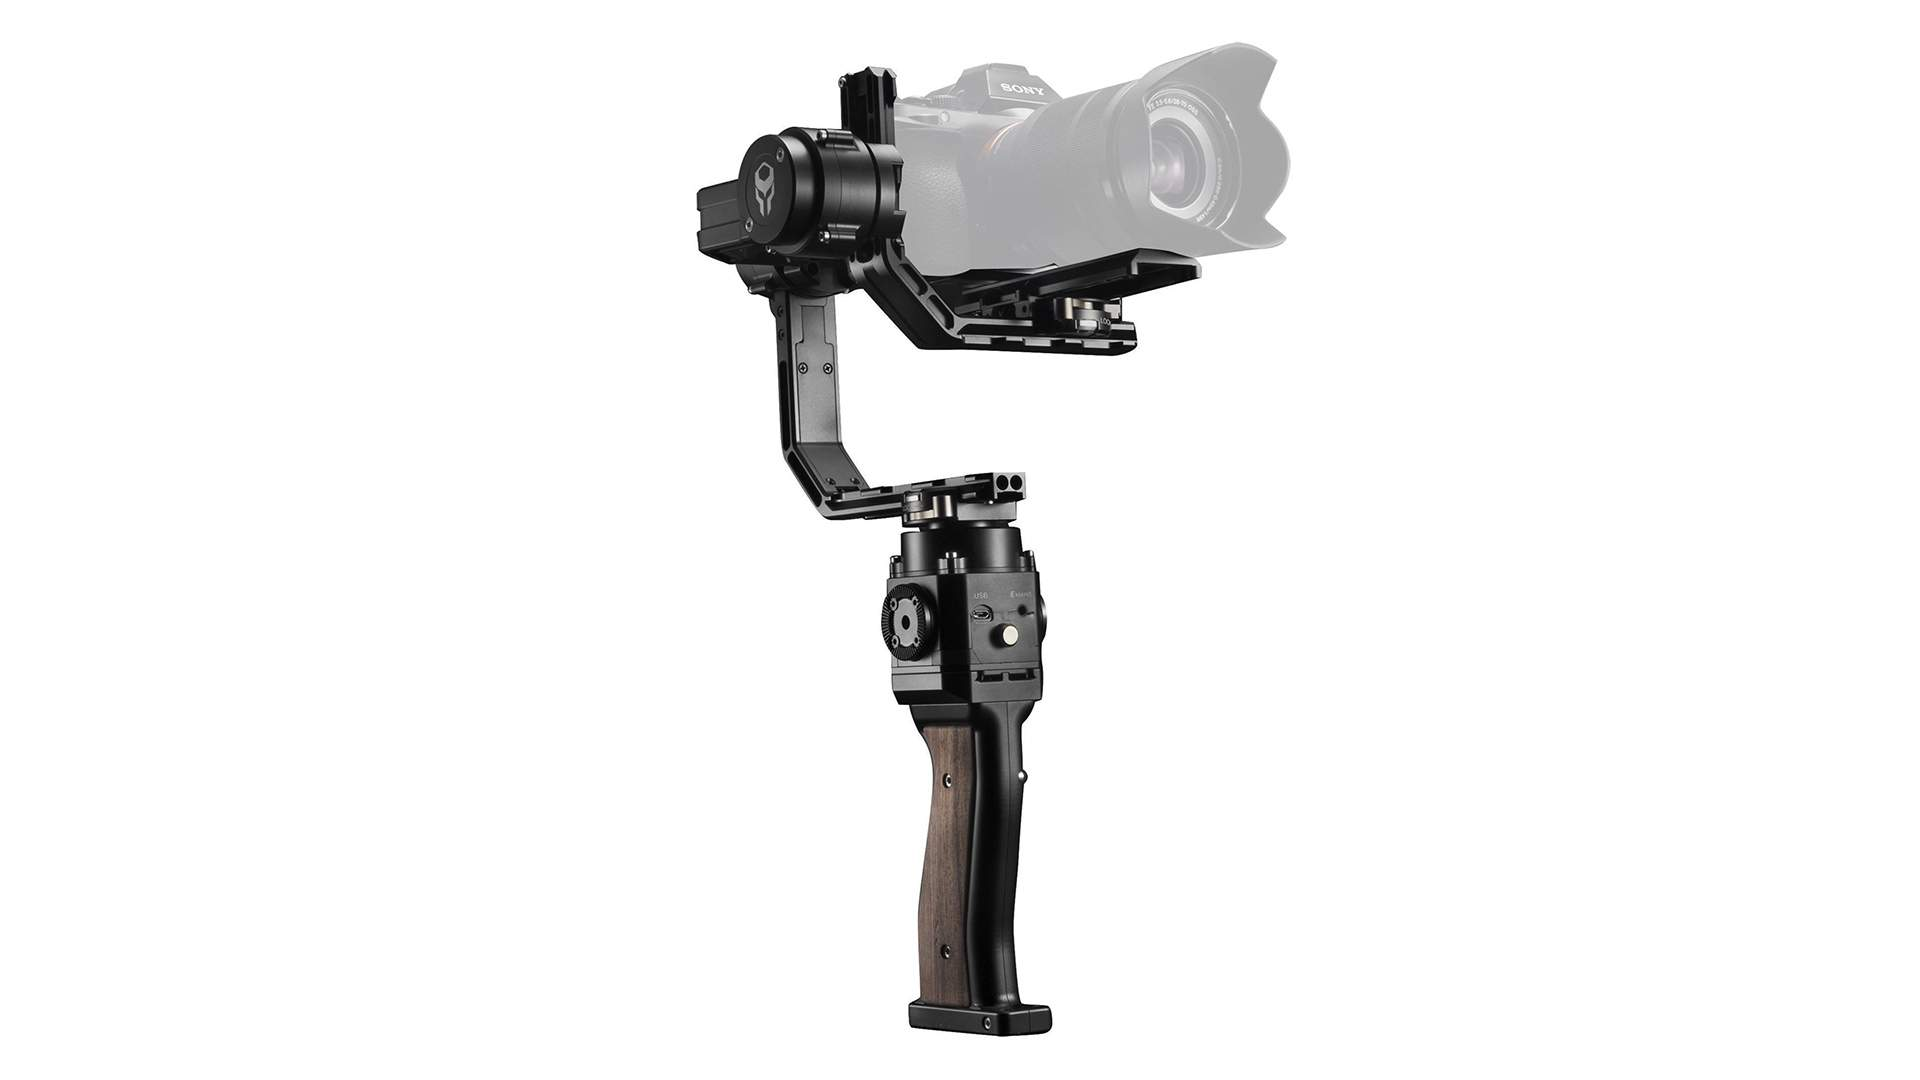 Vista frontale Stabilizzatore Gimbal Tilta gravity G1